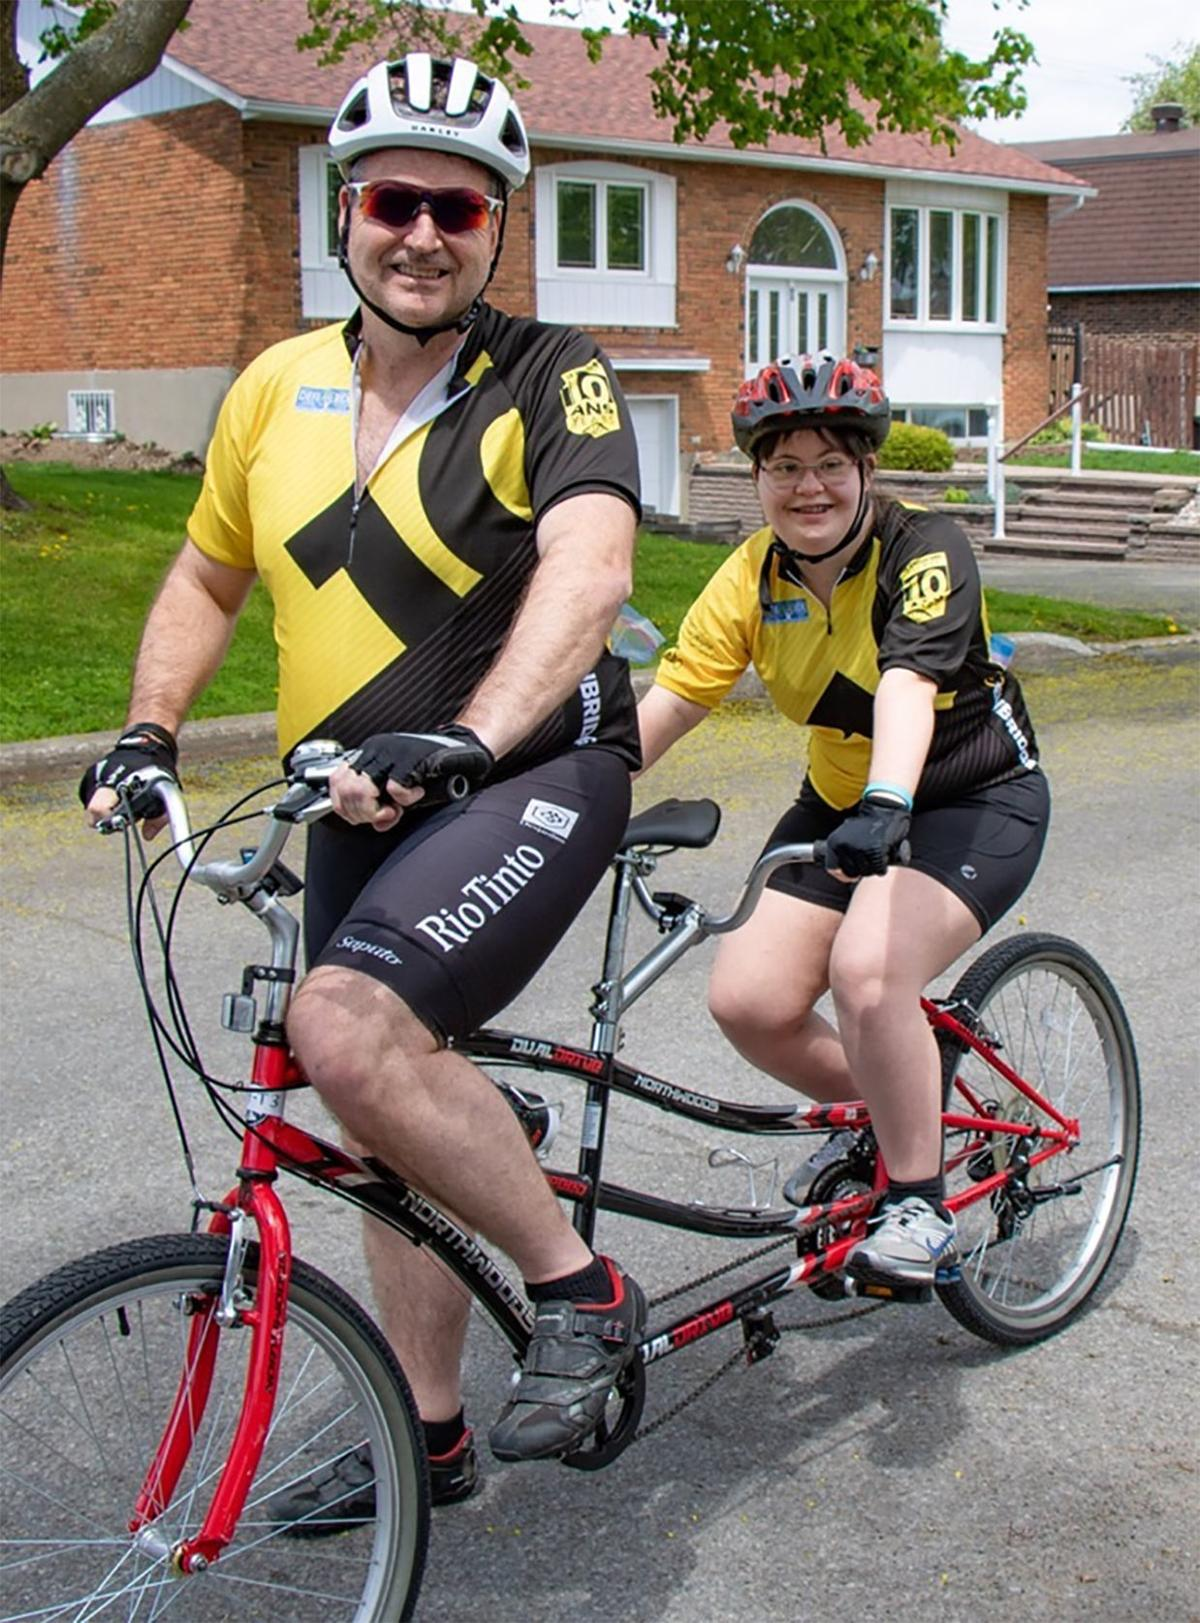 The Torriani tandem bike is part of a family affair in upcoming Enbridge Ride to Conquer Cancer